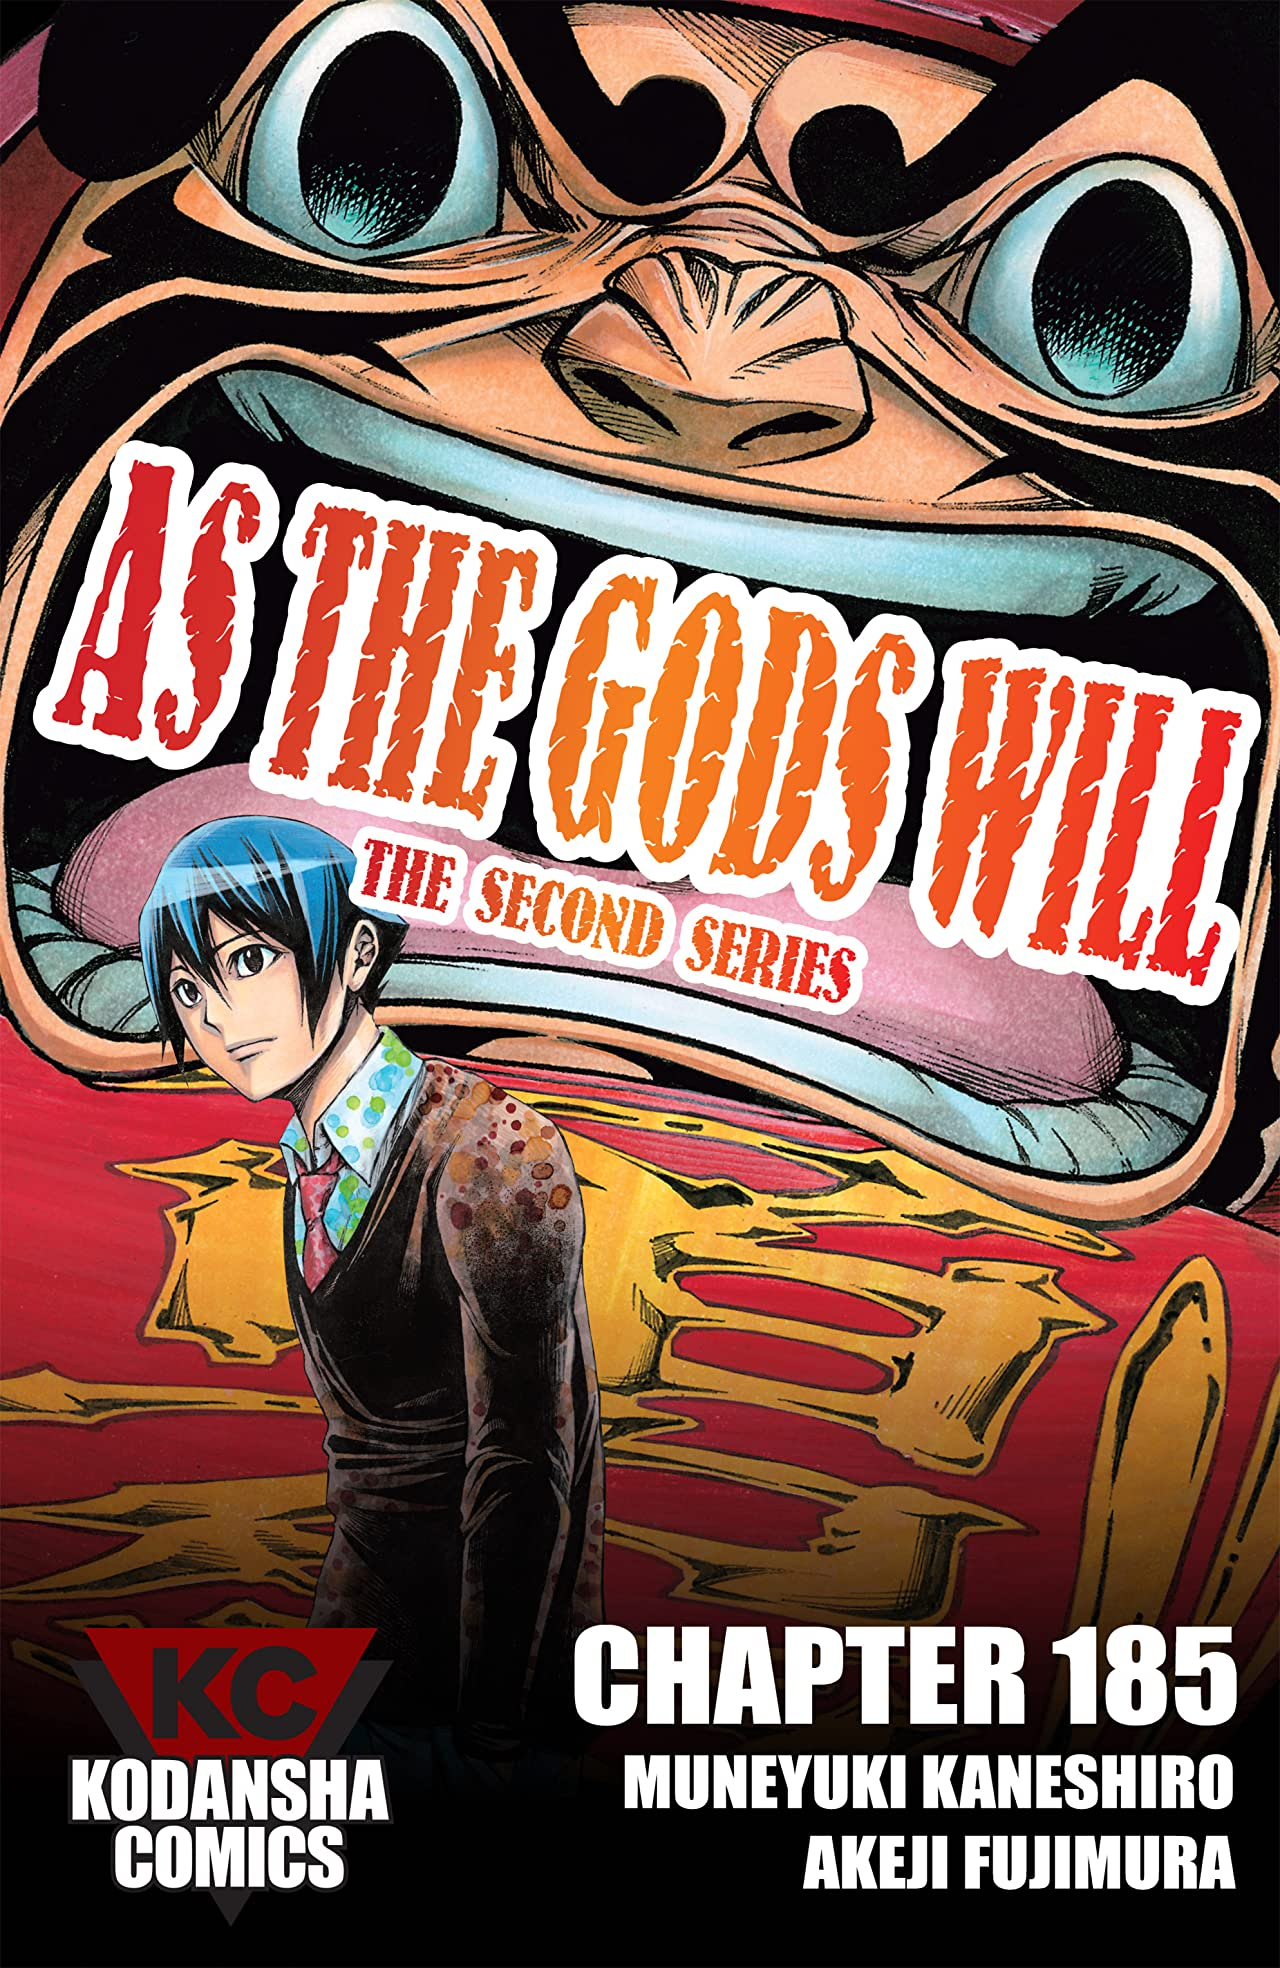 As The Gods Will: The Second Series #185